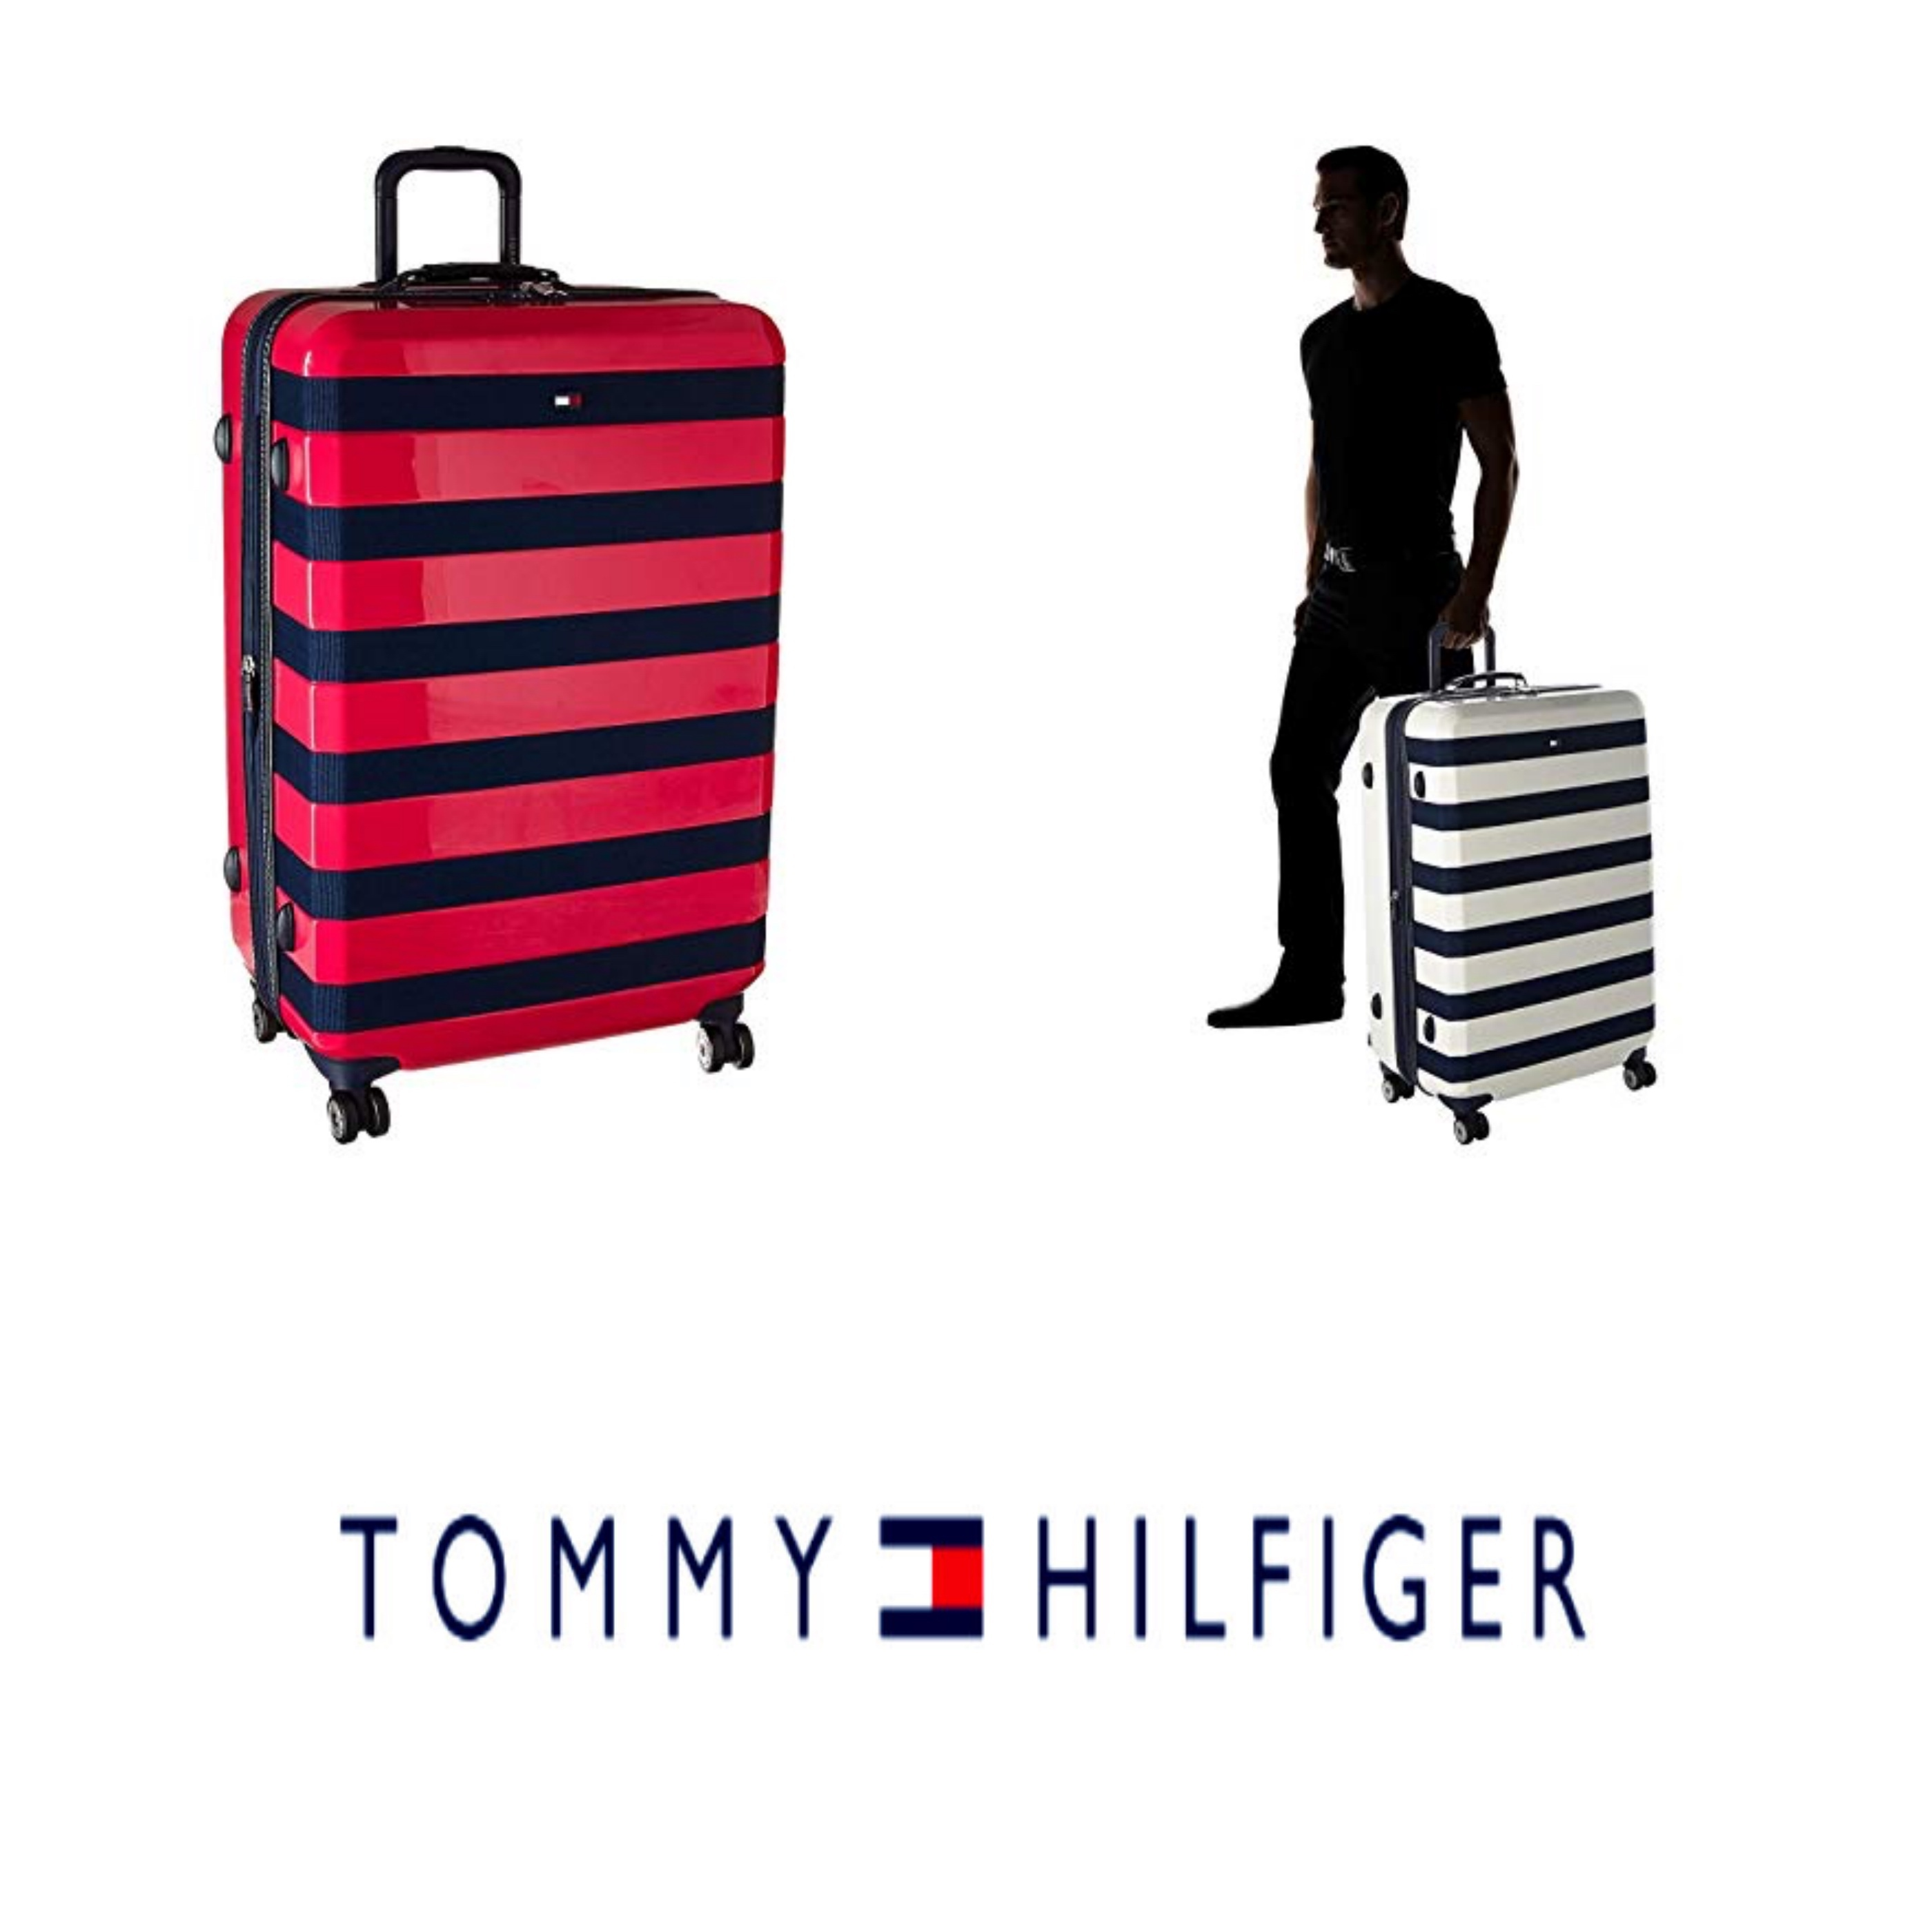 2018 Travel Bags Tommy Hilfiger 2018 19aw Unisex Hard Type Luggage Travel Bags 9127745